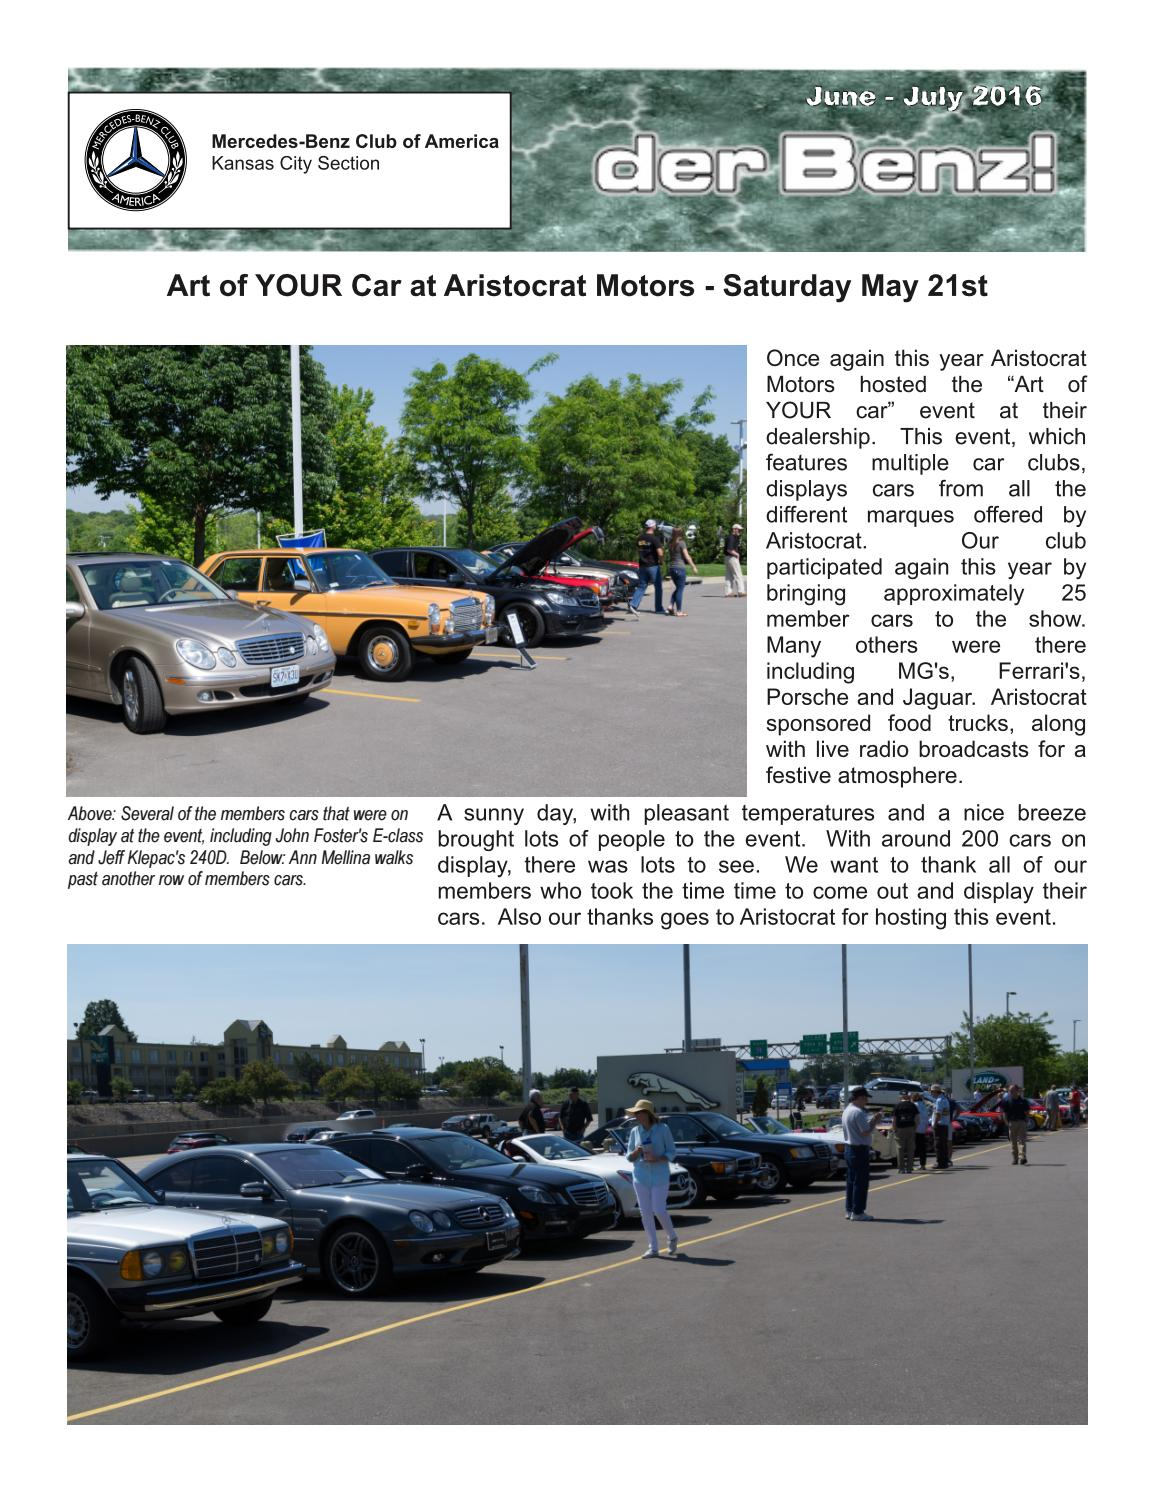 Mbca kc der benz newsletter june july 2016 by john ryan for Mercedes benz of kansas city aristocrat